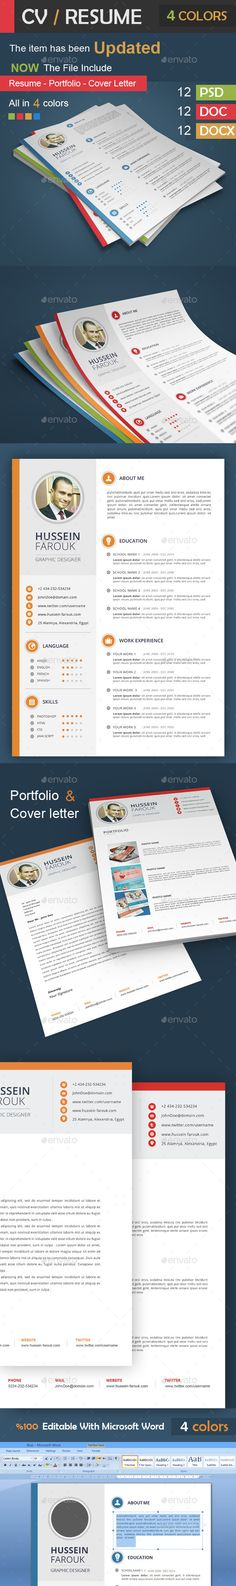 Resume \/ Cv Template - Word And Indesign Cv template, Resume cv - how to make resume stand out